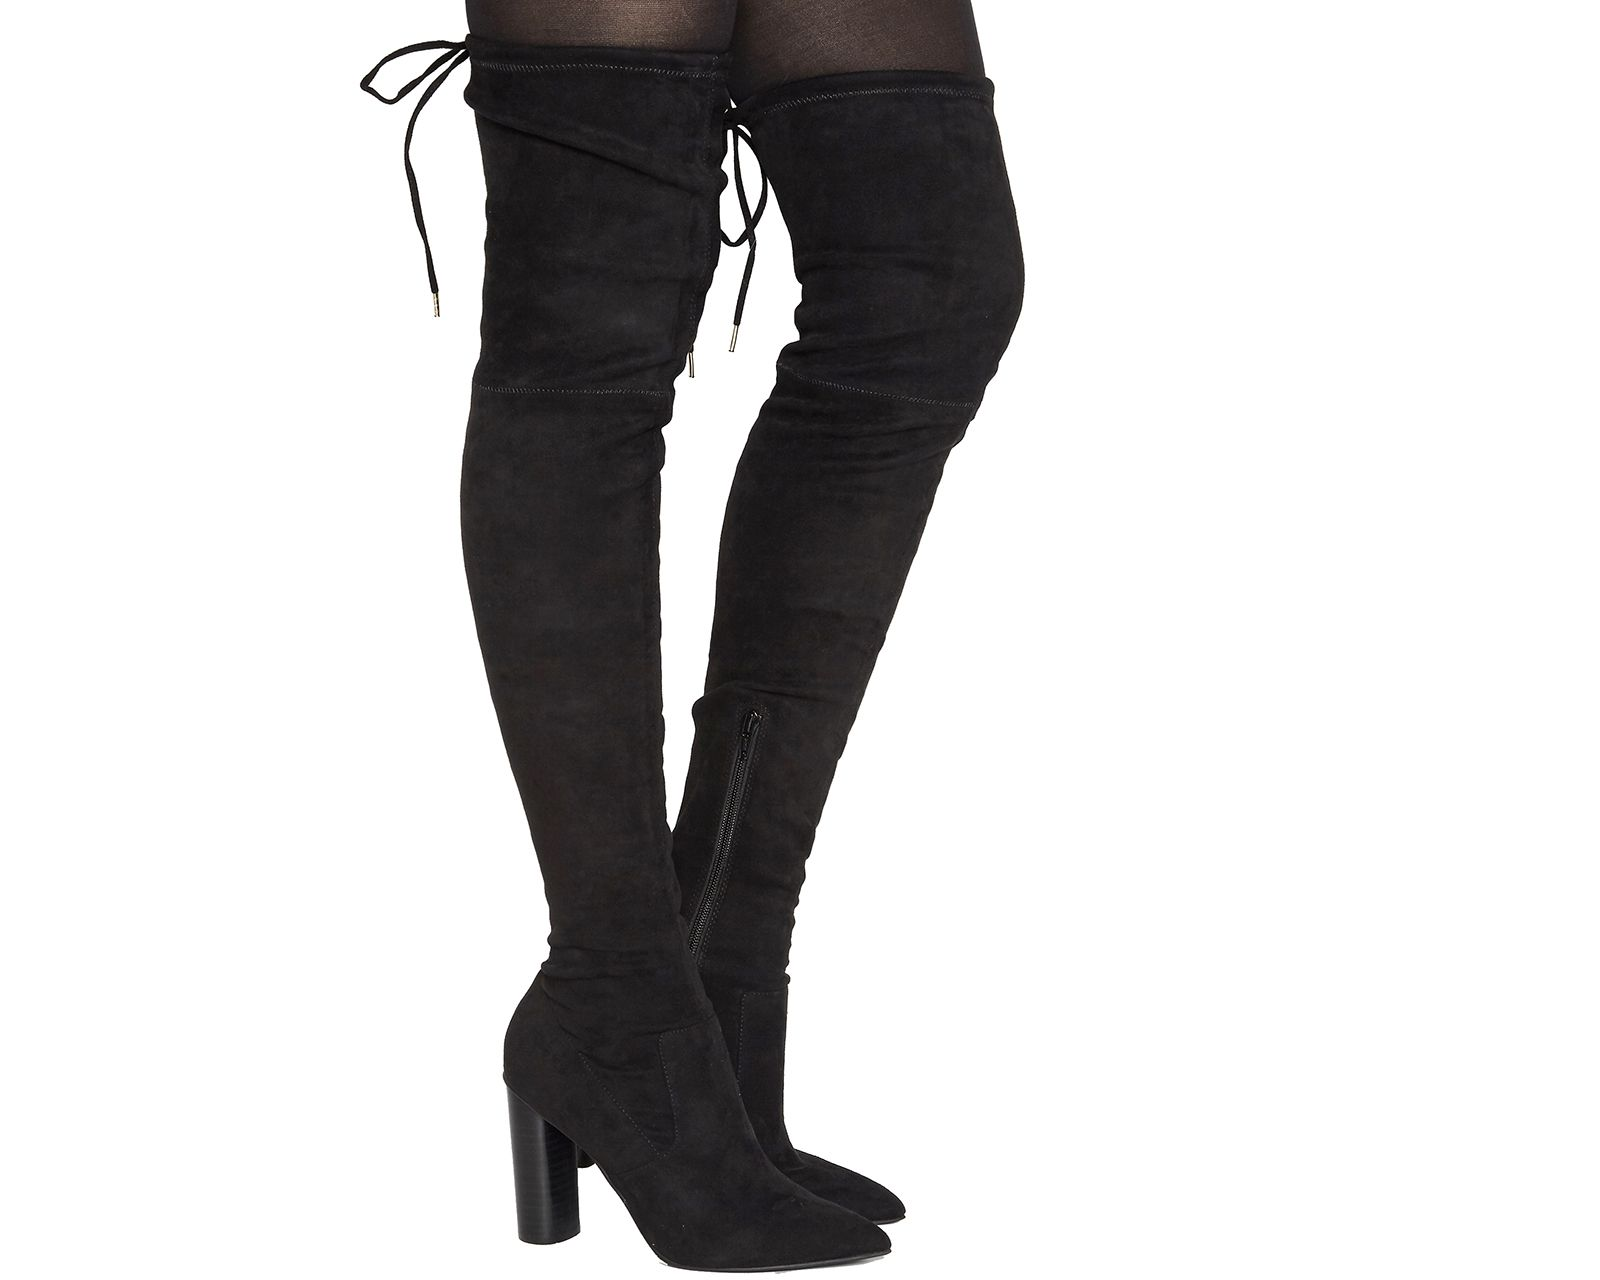 office the shop. Office Kandy Shop Over The Knee Boots Black F